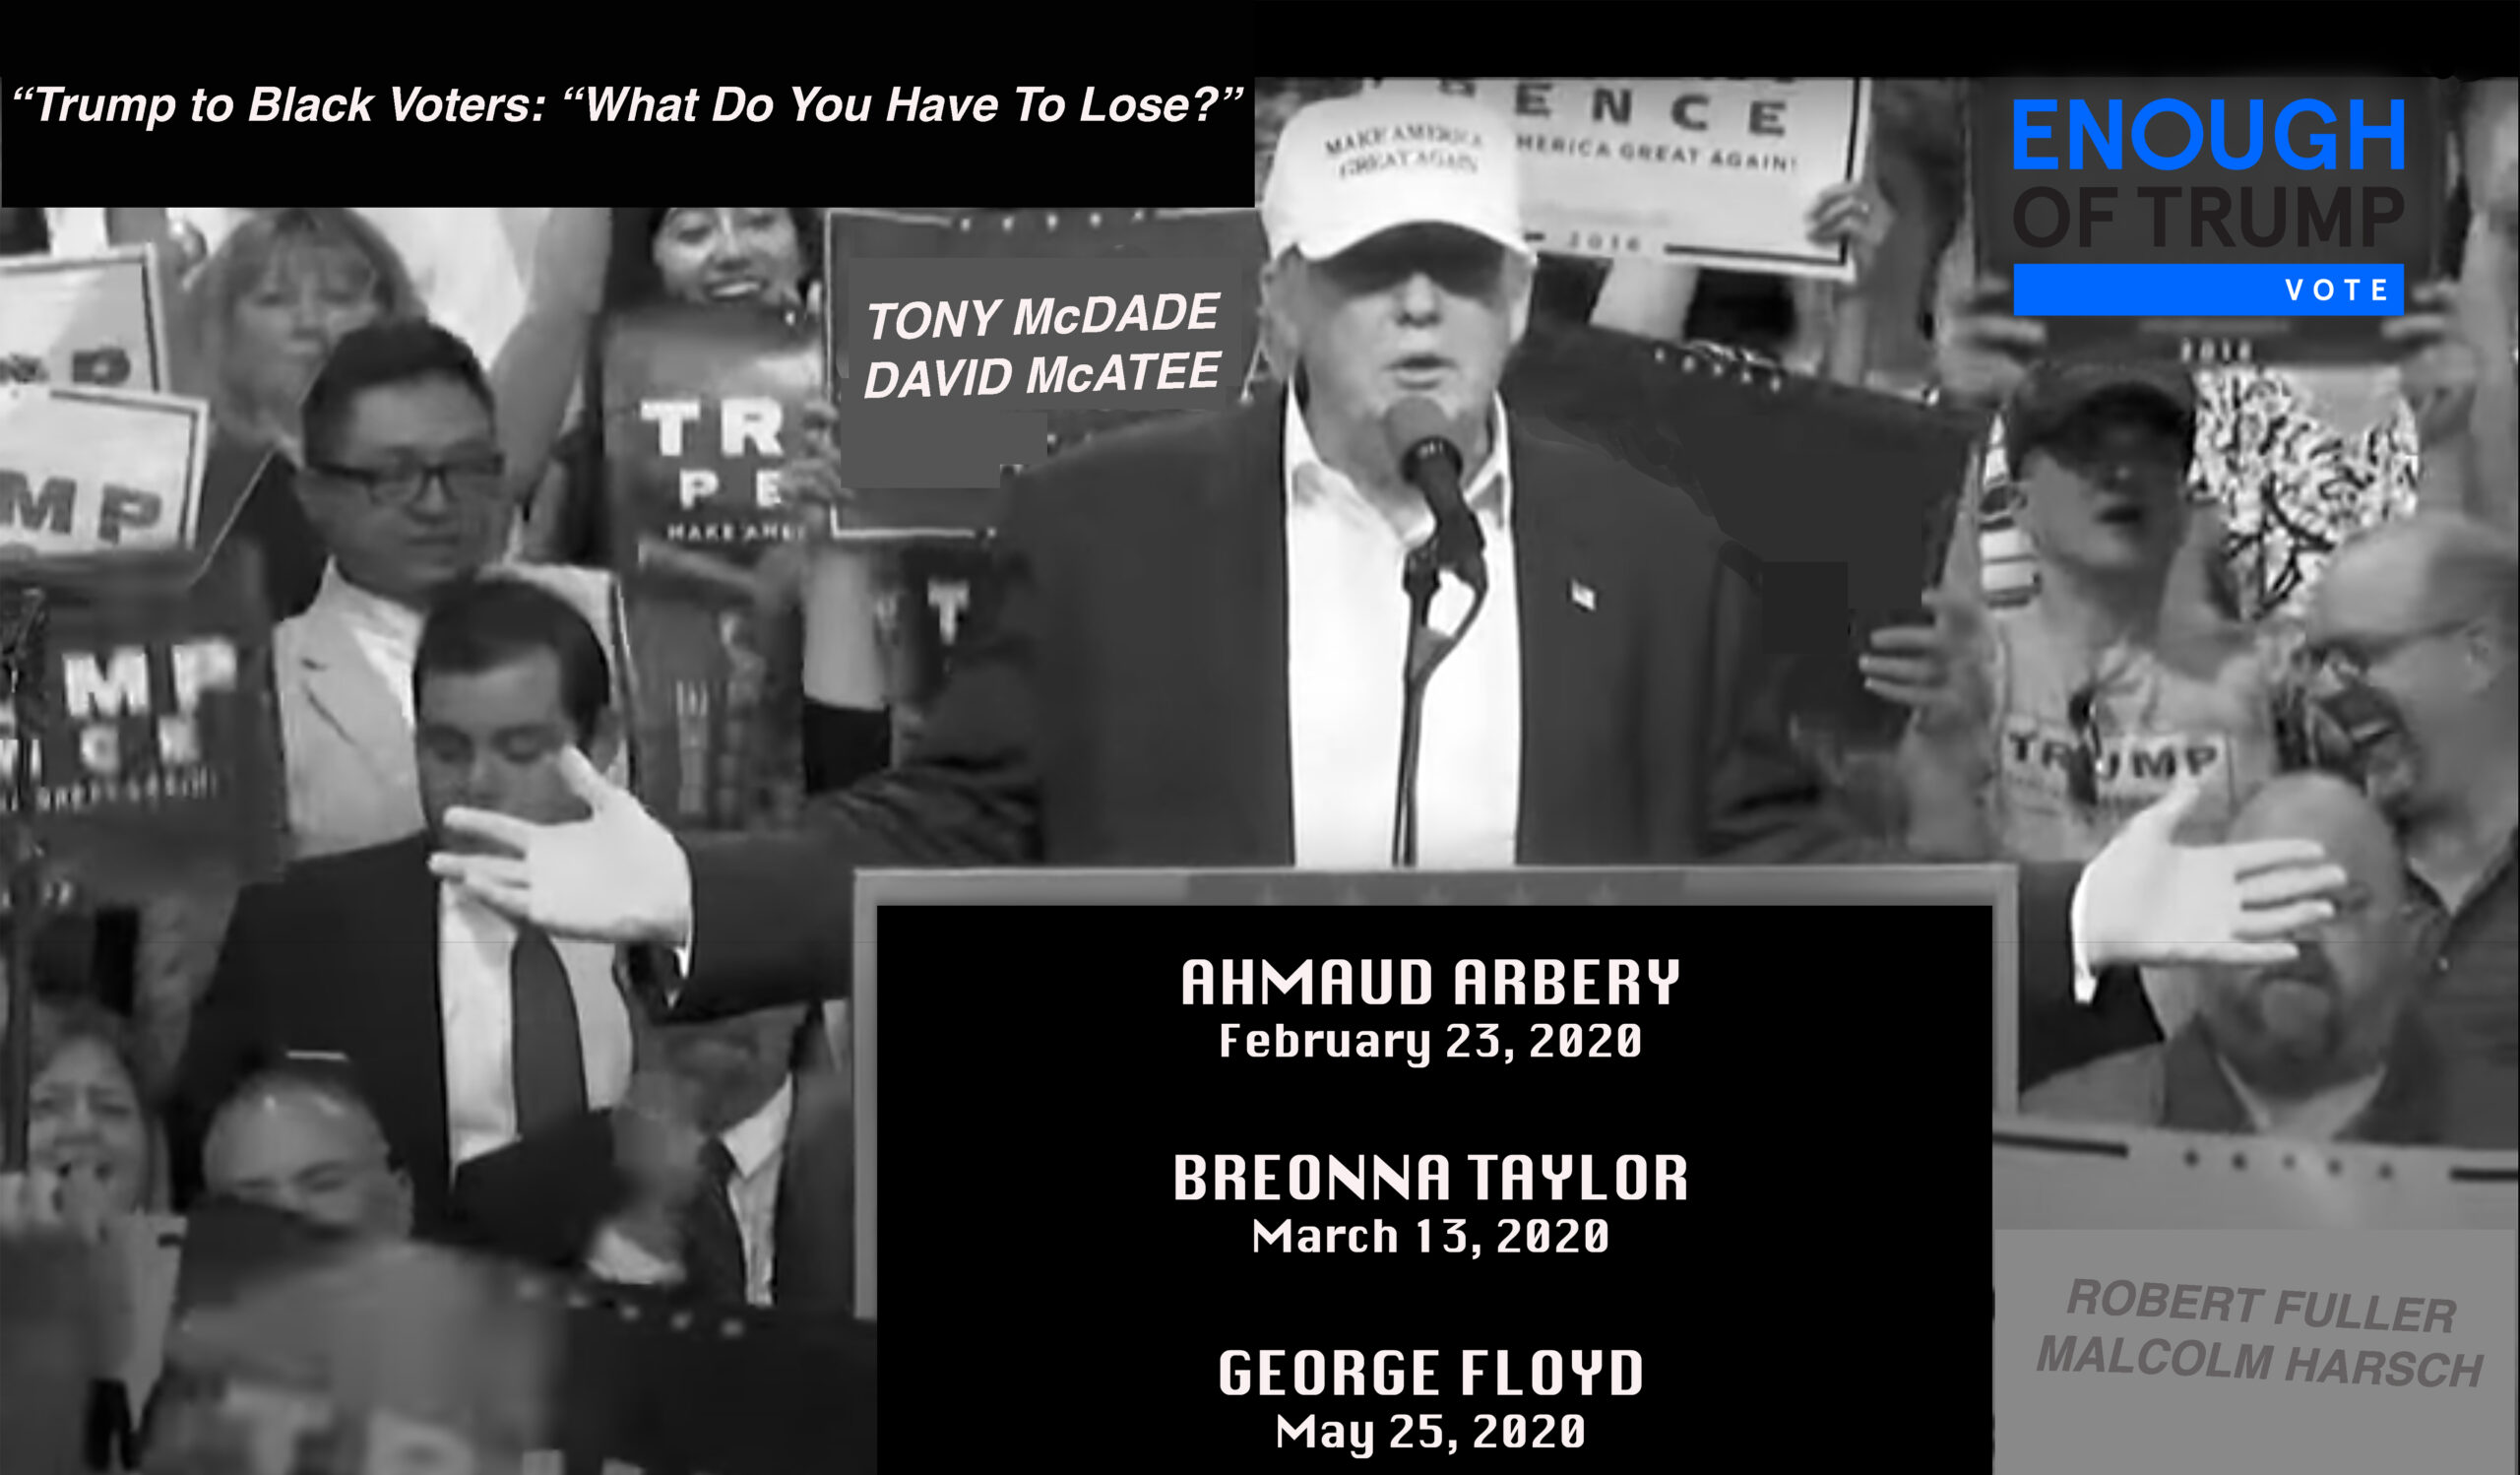 Trump to Black Voters: What Do You Have To Lose? Images of Trump at a rally with a podium that says: Ahmaud Arbery, February 23, 2020. Breonna Taylor, March 13, 2020. George Floyd, May 25, 2020. Robert Fuller, Malcolm Harsch. Tony McDade, David McAtee. ENOUGH OF TRUMP - Vote.